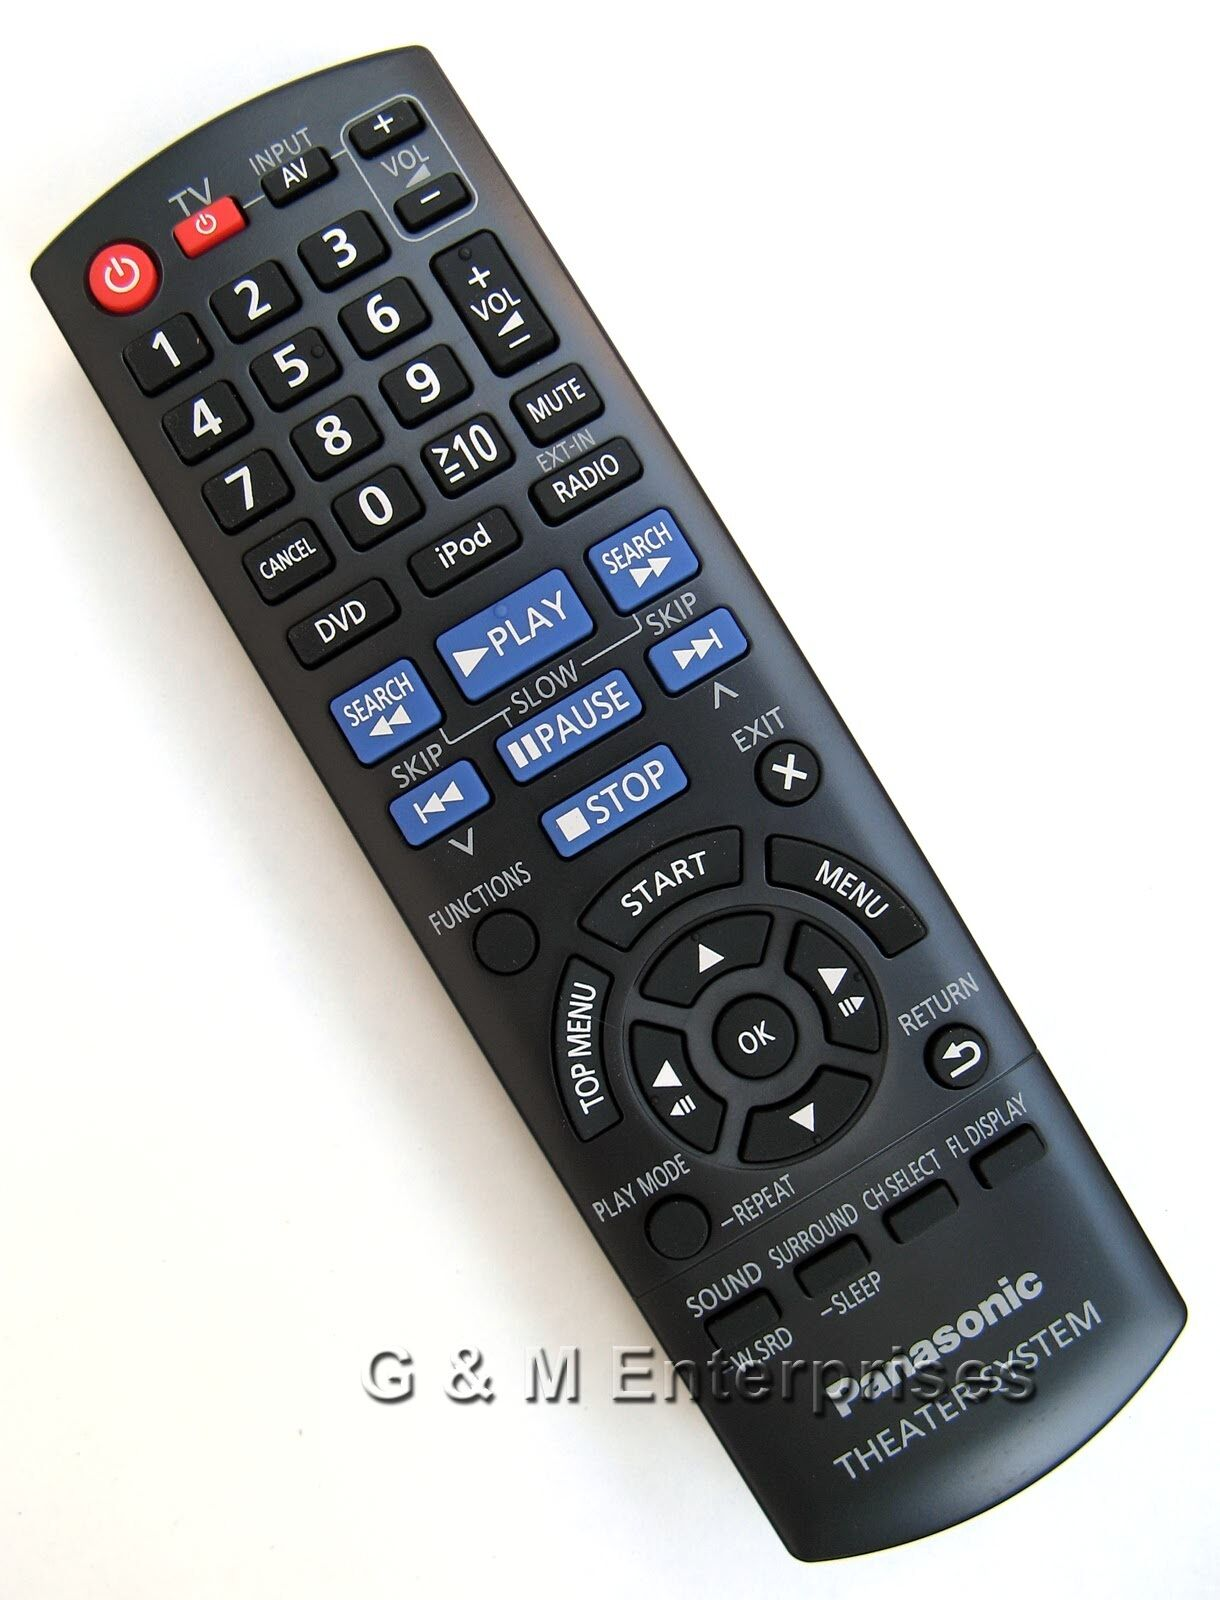 Panasonic N2qayb000702 Replacement Remote Control For Sc-xh170, Sa-xh170